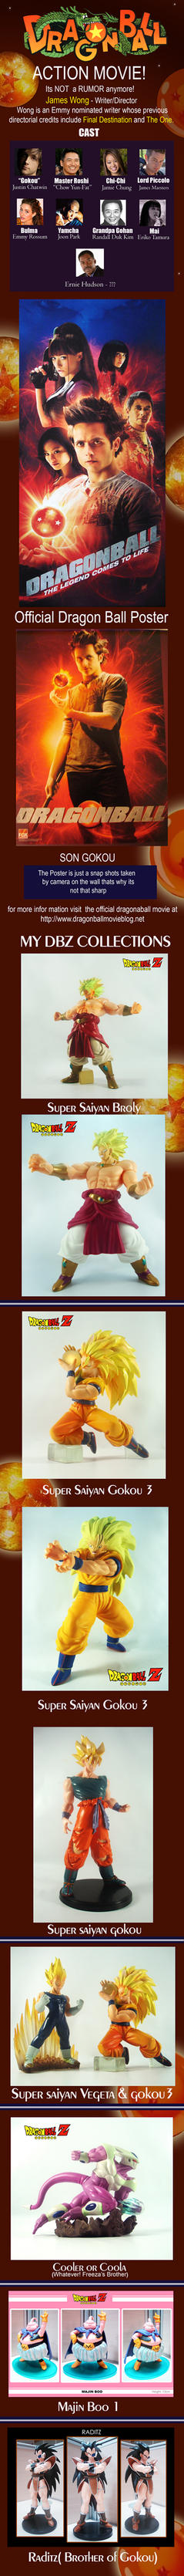 DRAGONBALL ACTION MOVIE 2009 by jeffbedash325